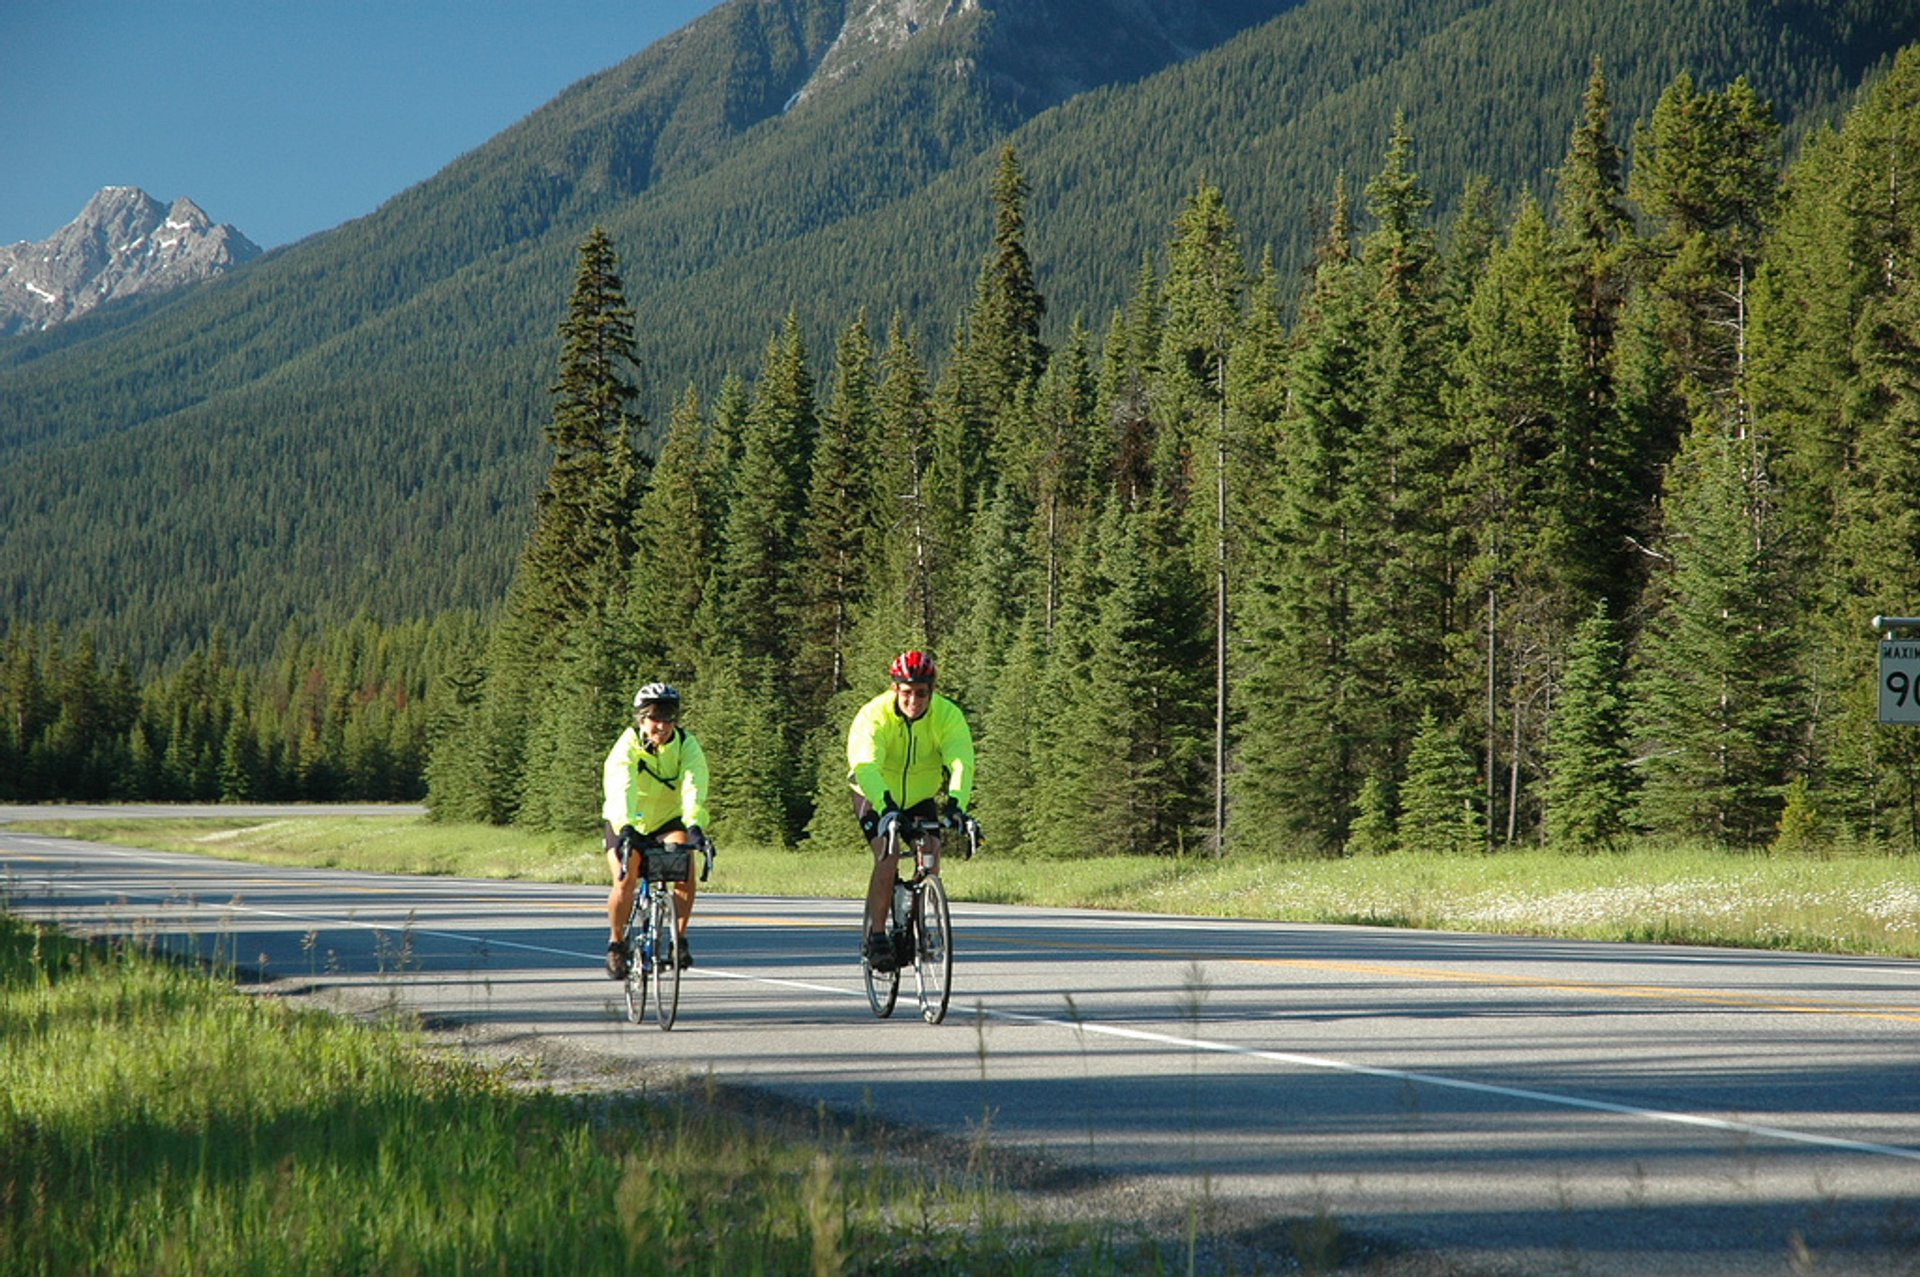 Best time to see Mountain Biking in Banff & Jasper National Parks 2019